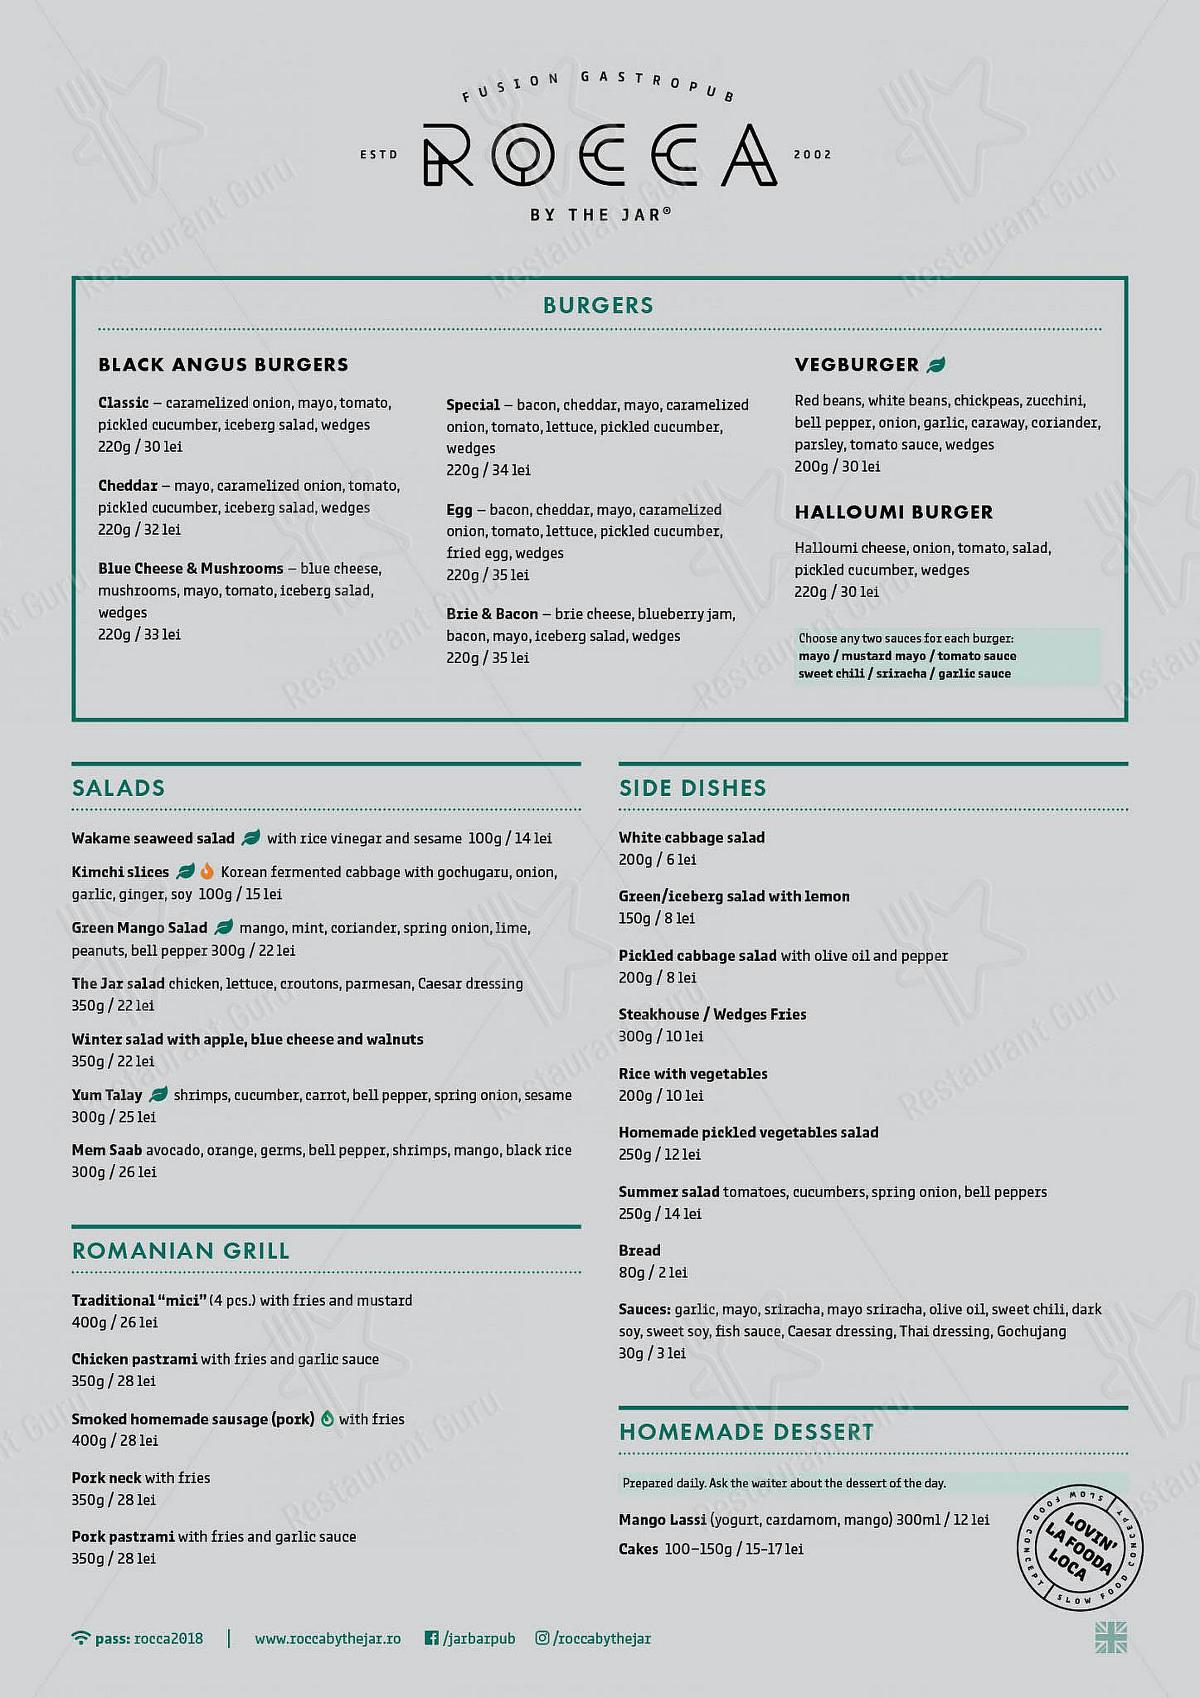 Rocca by The Jar menu - dishes and beverages